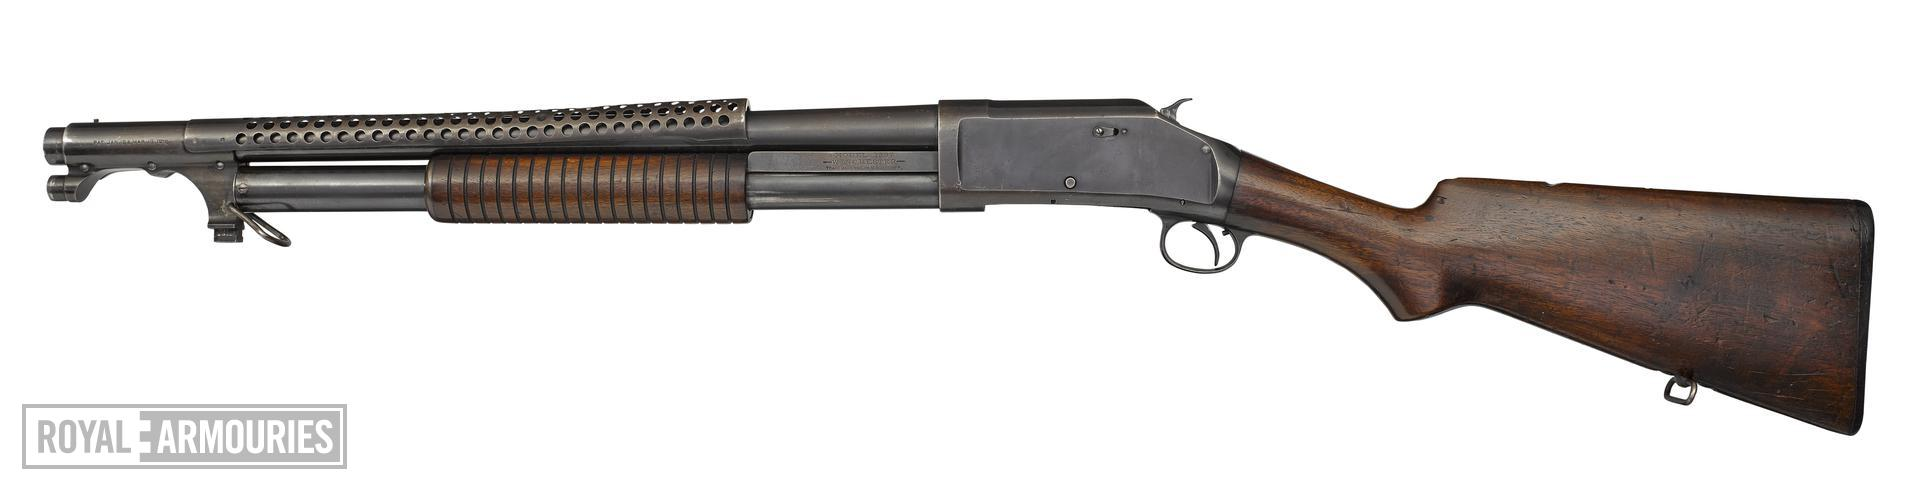 Winchester Model 1897 centrefire pump action military shotgun with model 1917 bayonet,American, 1921